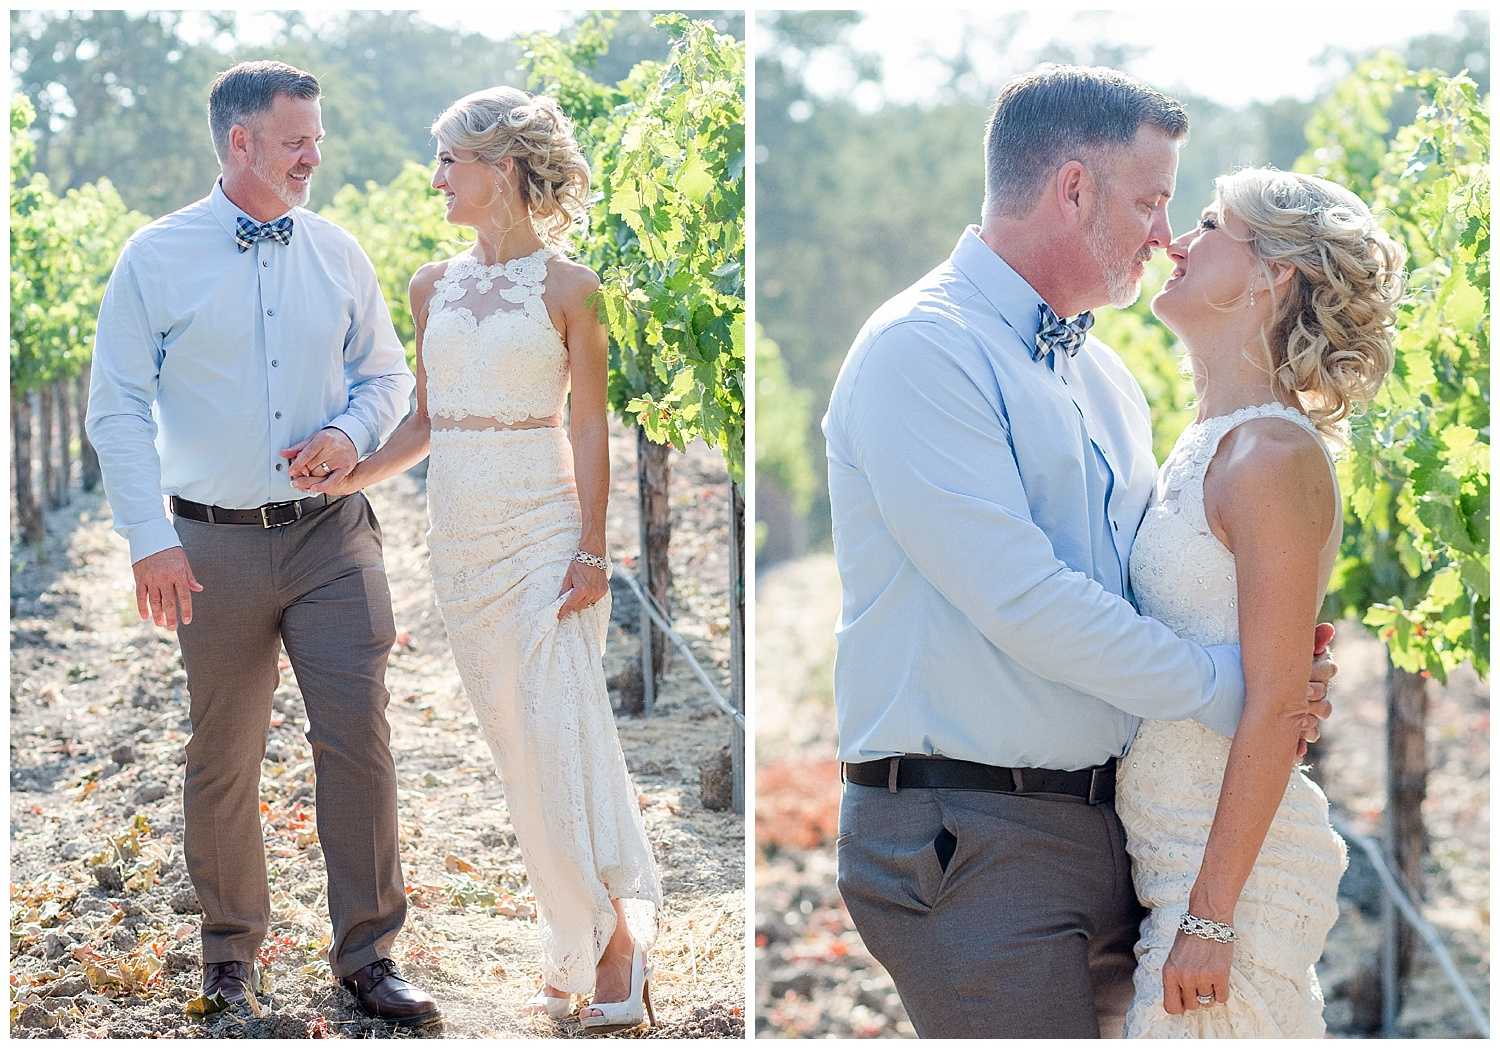 Jill+Bret | Paso Robles winery elopement | Renoda Campbell Photography_06.jpg